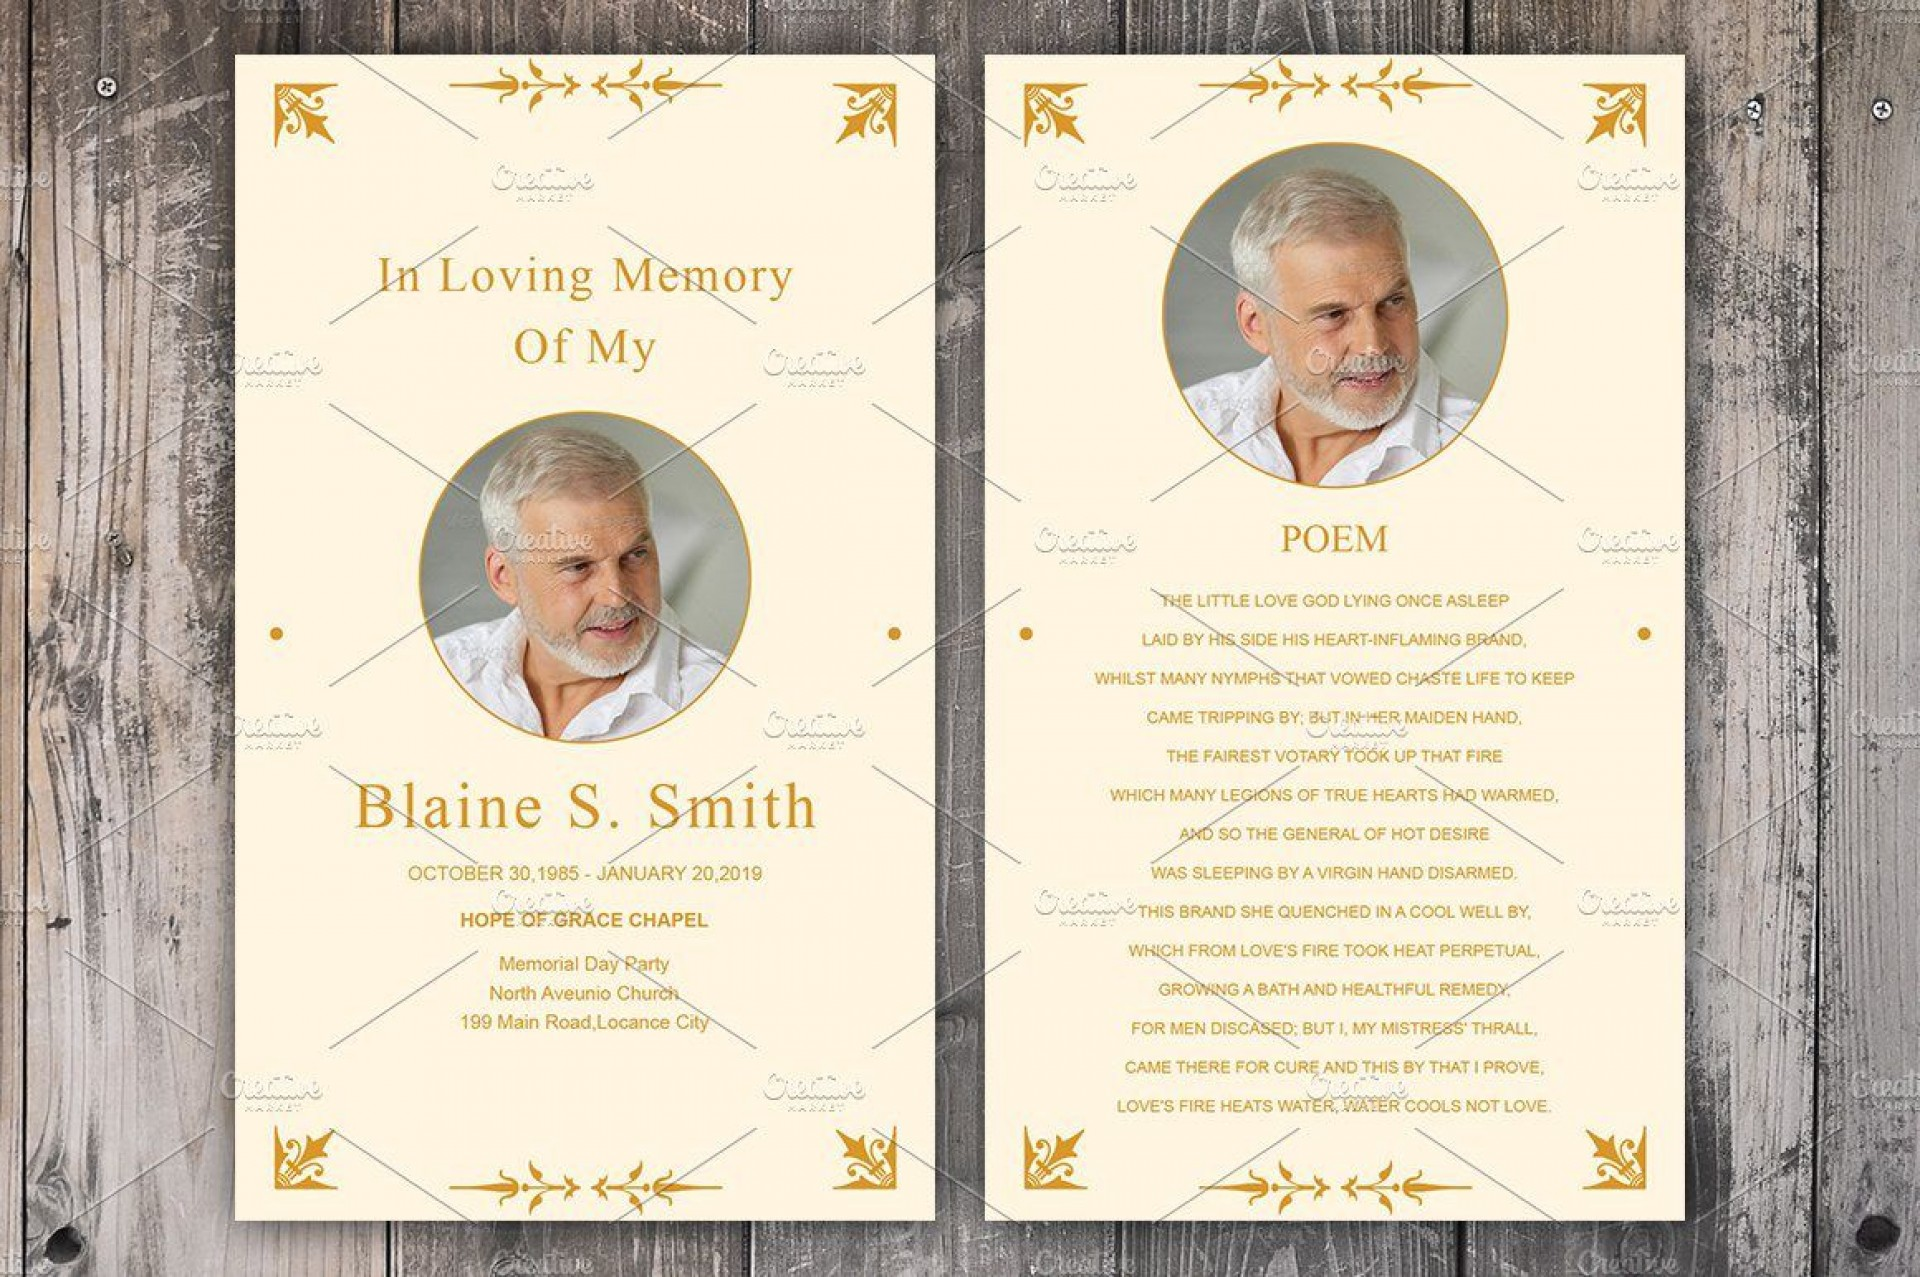 008 Excellent Funeral Prayer Card Template Picture  Templates For Word Free1920